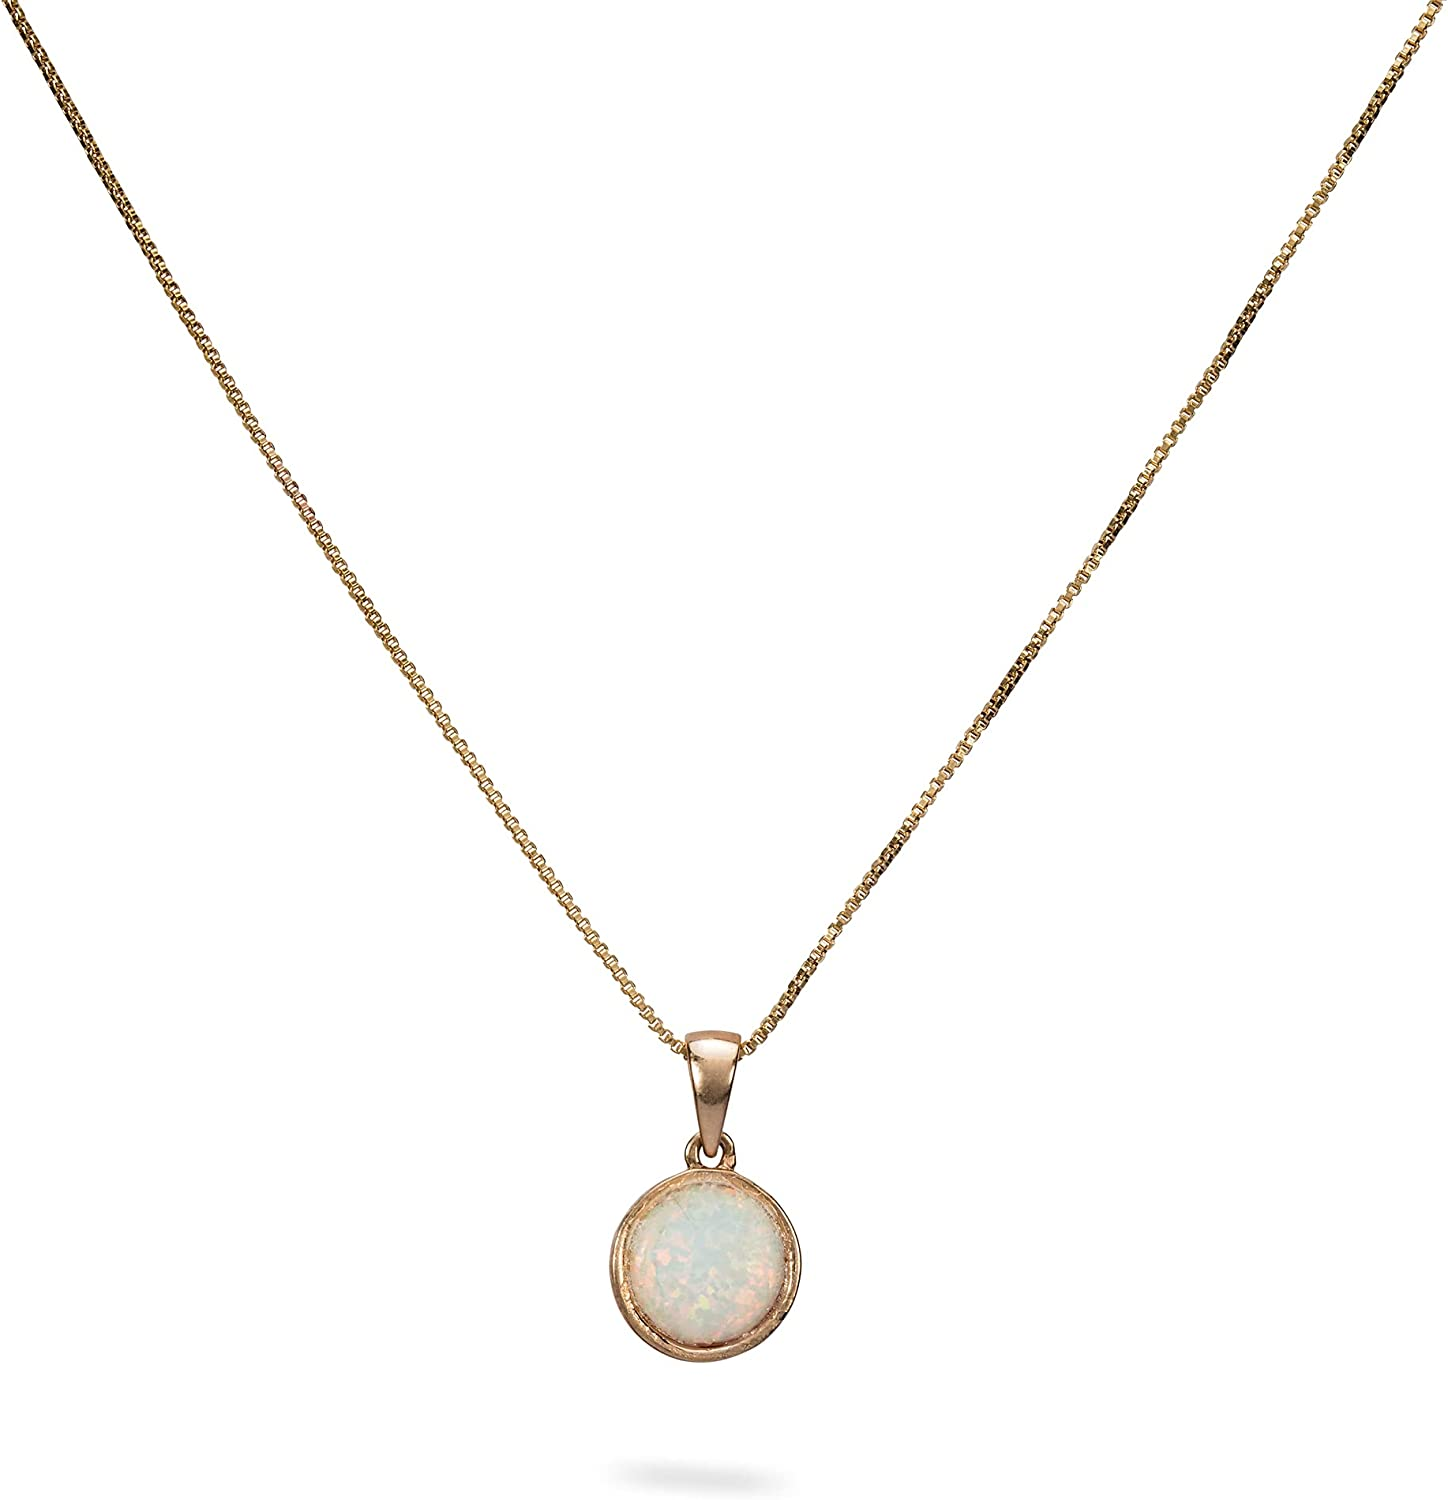 Avnis White Opal Necklace, 6MM Round Opal Pendant Gold Filled Necklace, Box Chain Pendant Necklace 16+2 Inches Extender for Women